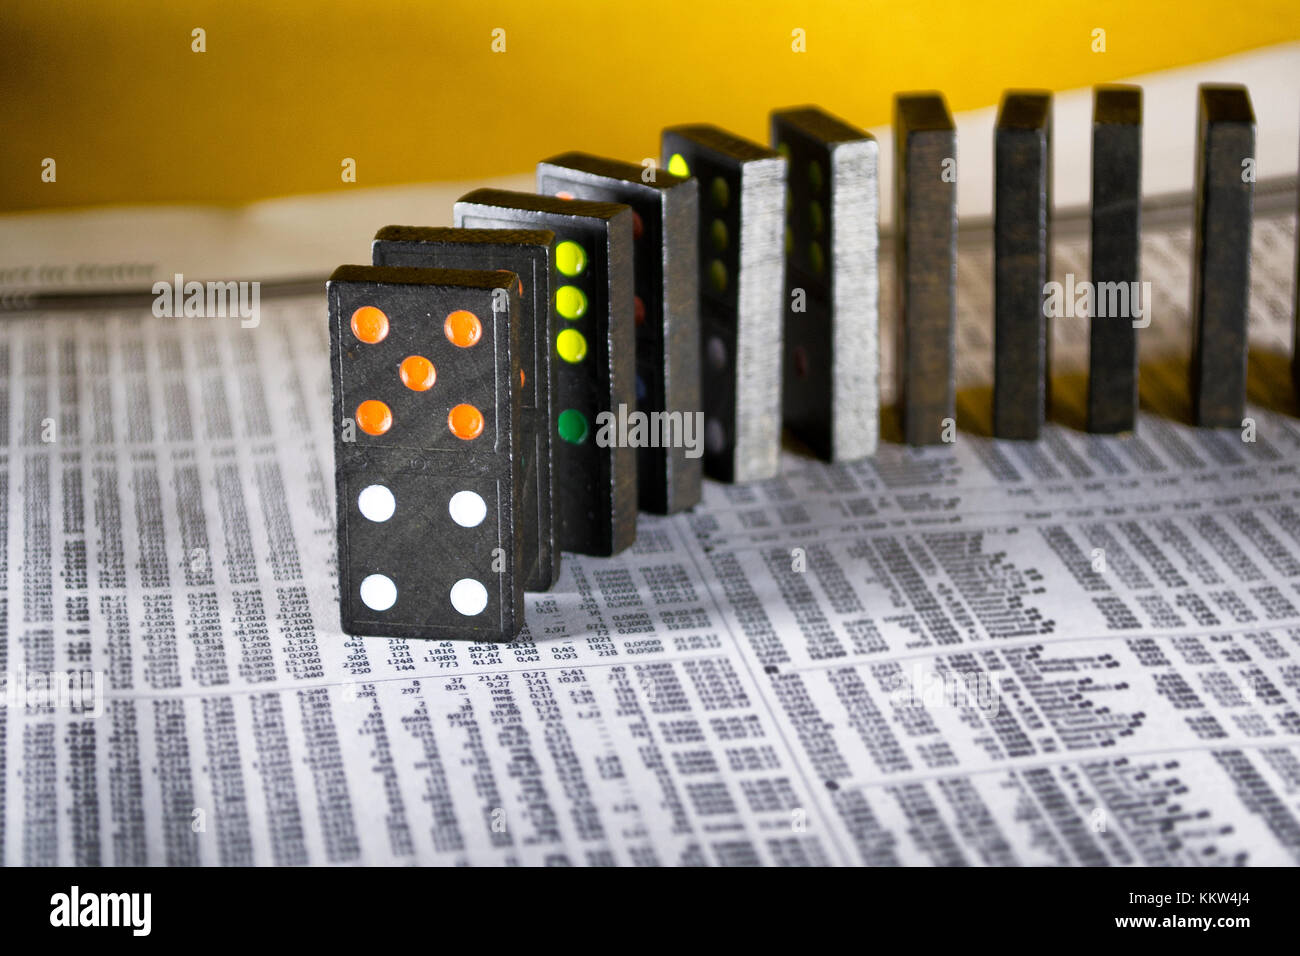 Domino on financial newspaper - Stock Image